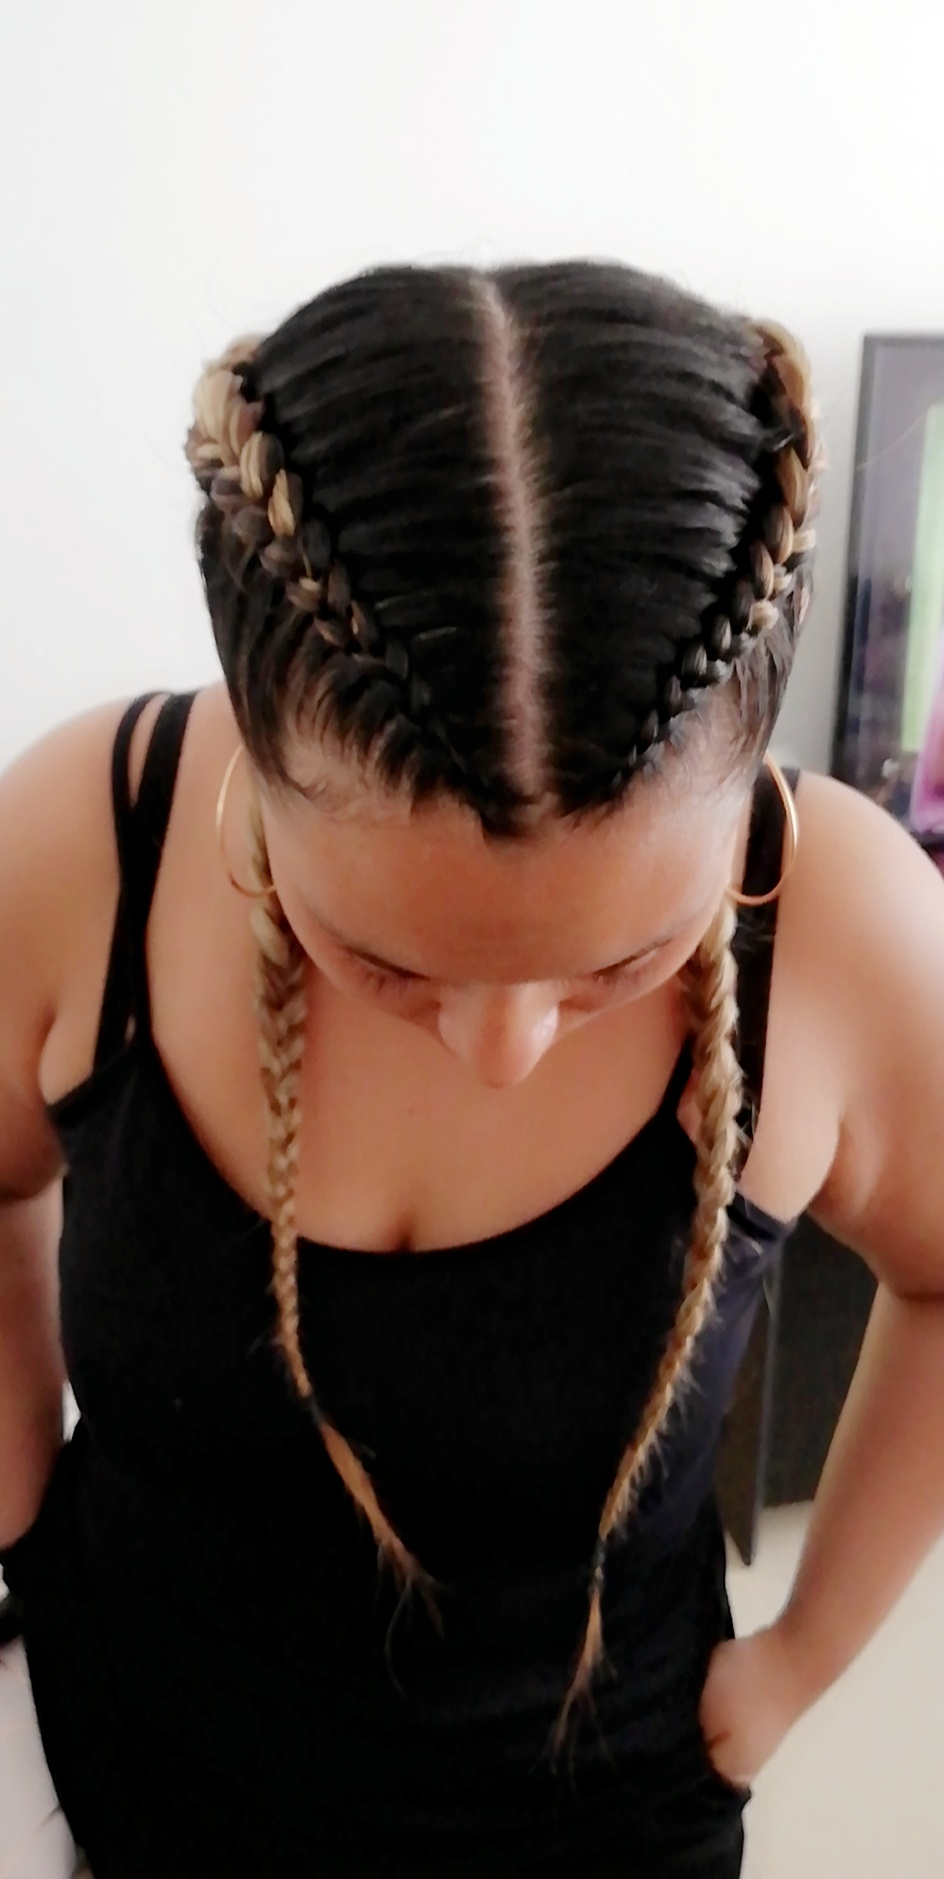 salon de coiffure afro tresse tresses box braids crochet braids vanilles tissages paris 75 77 78 91 92 93 94 95 REEDNBZM